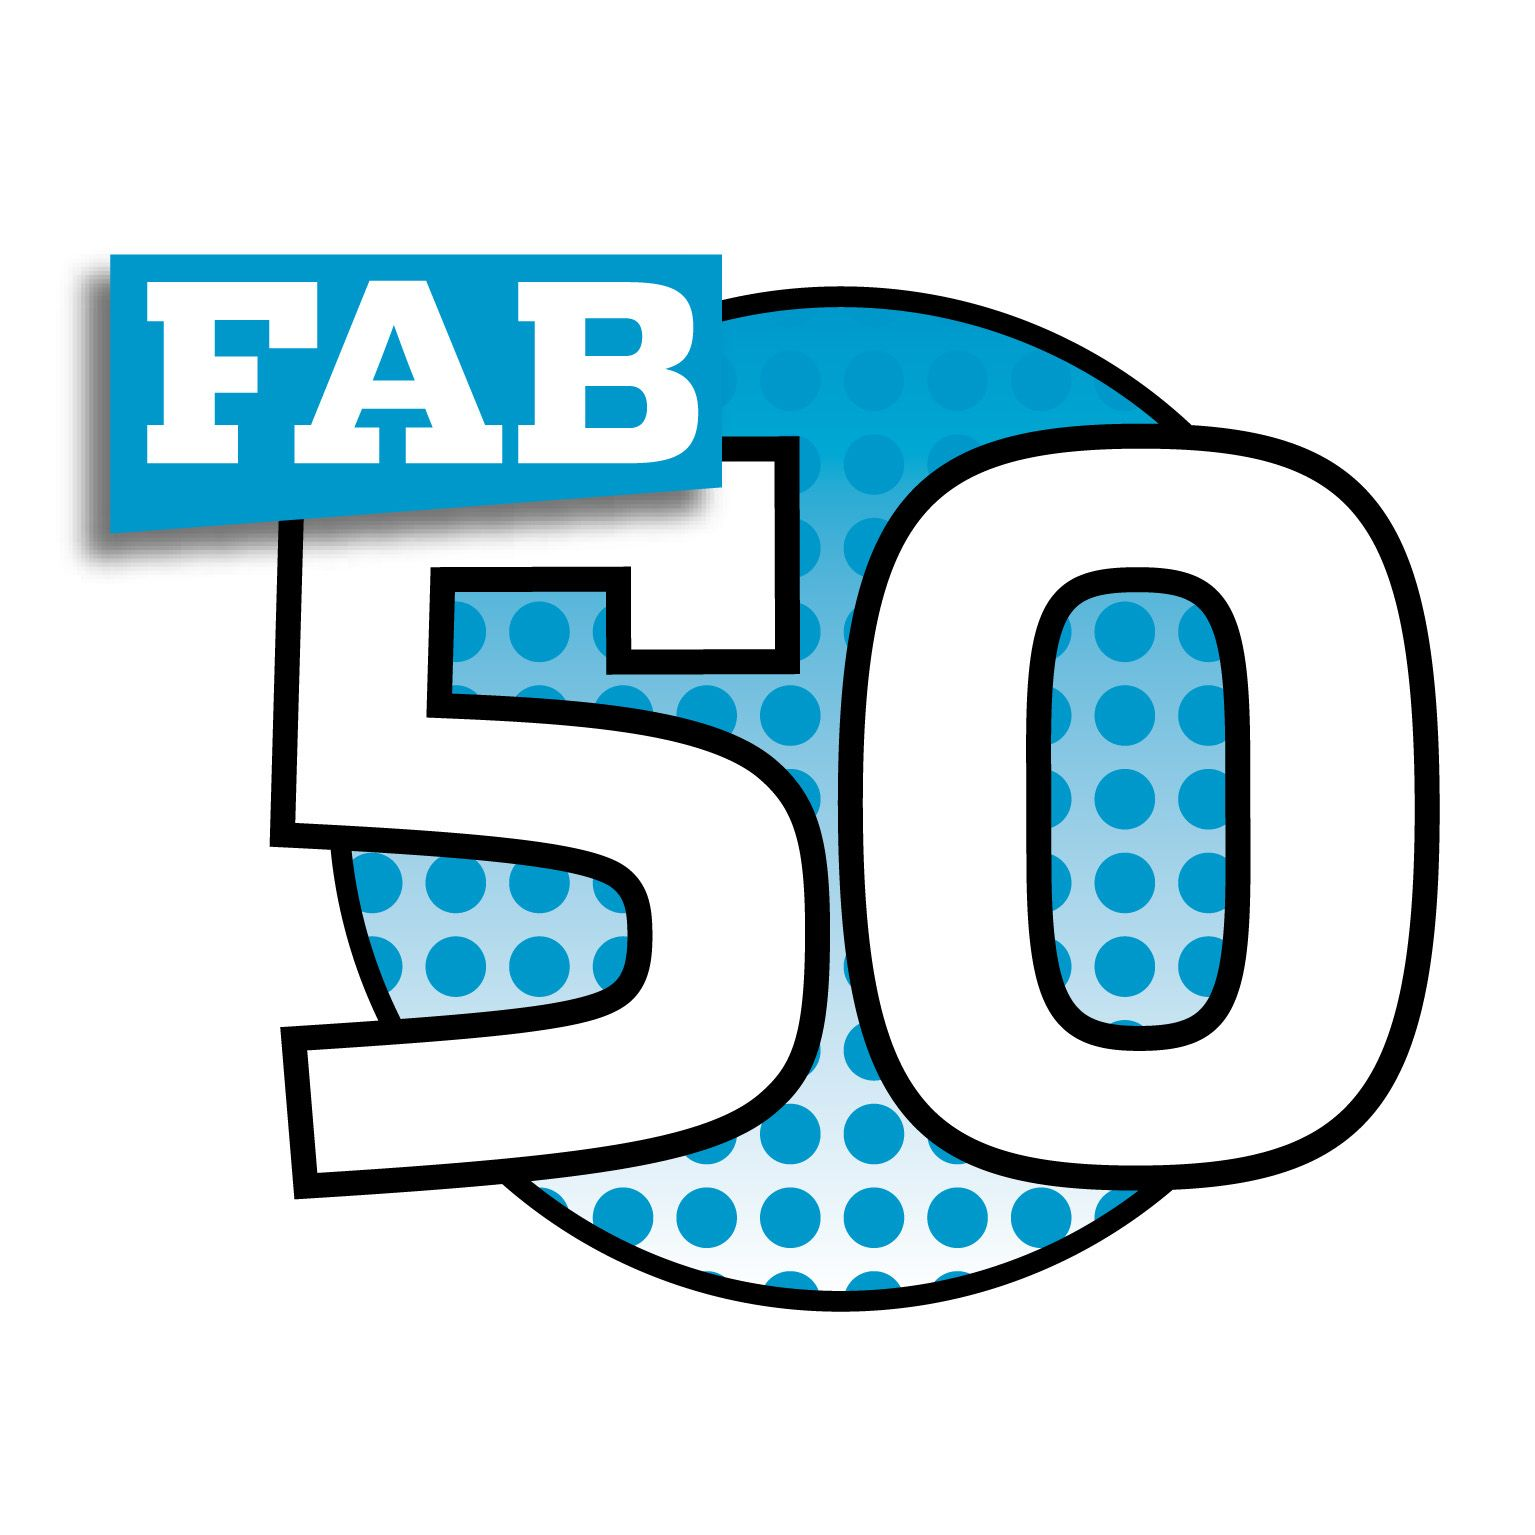 Fab Top 50 Award: Brands On Pinterest: Fab Over 50